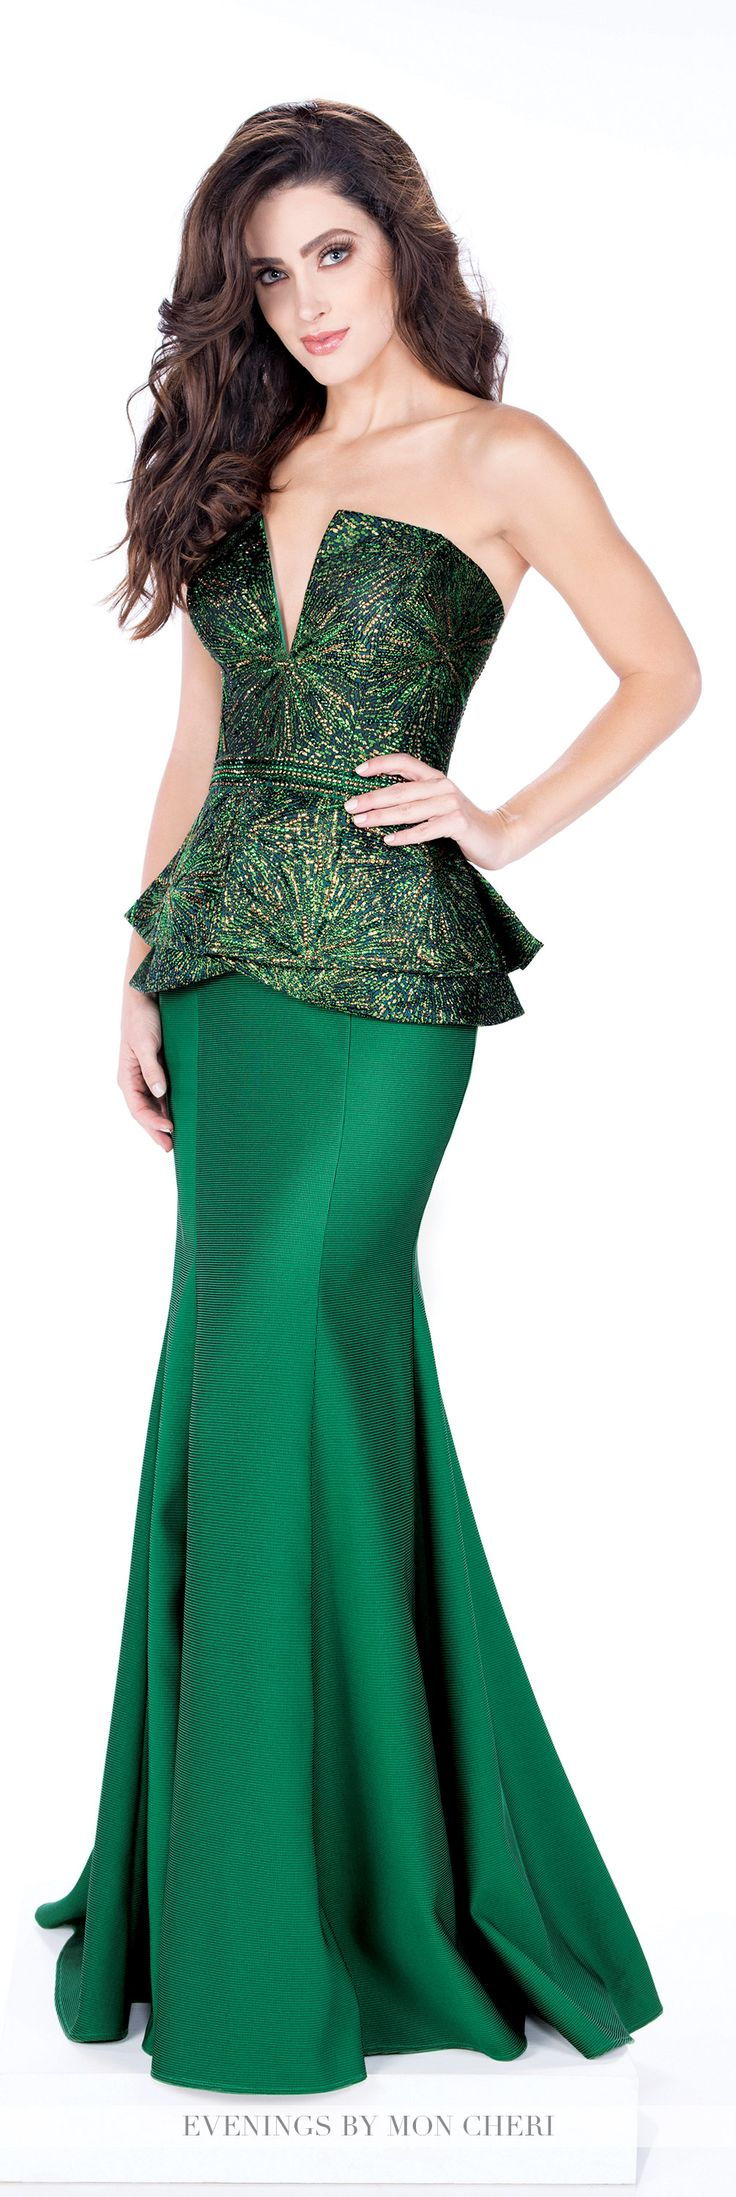 Formal Evening Gowns by Mon Cheri - Fall 2016 - Style No. MCE21635 - emerald green evening dress with brocade peplum bodice and sweep train